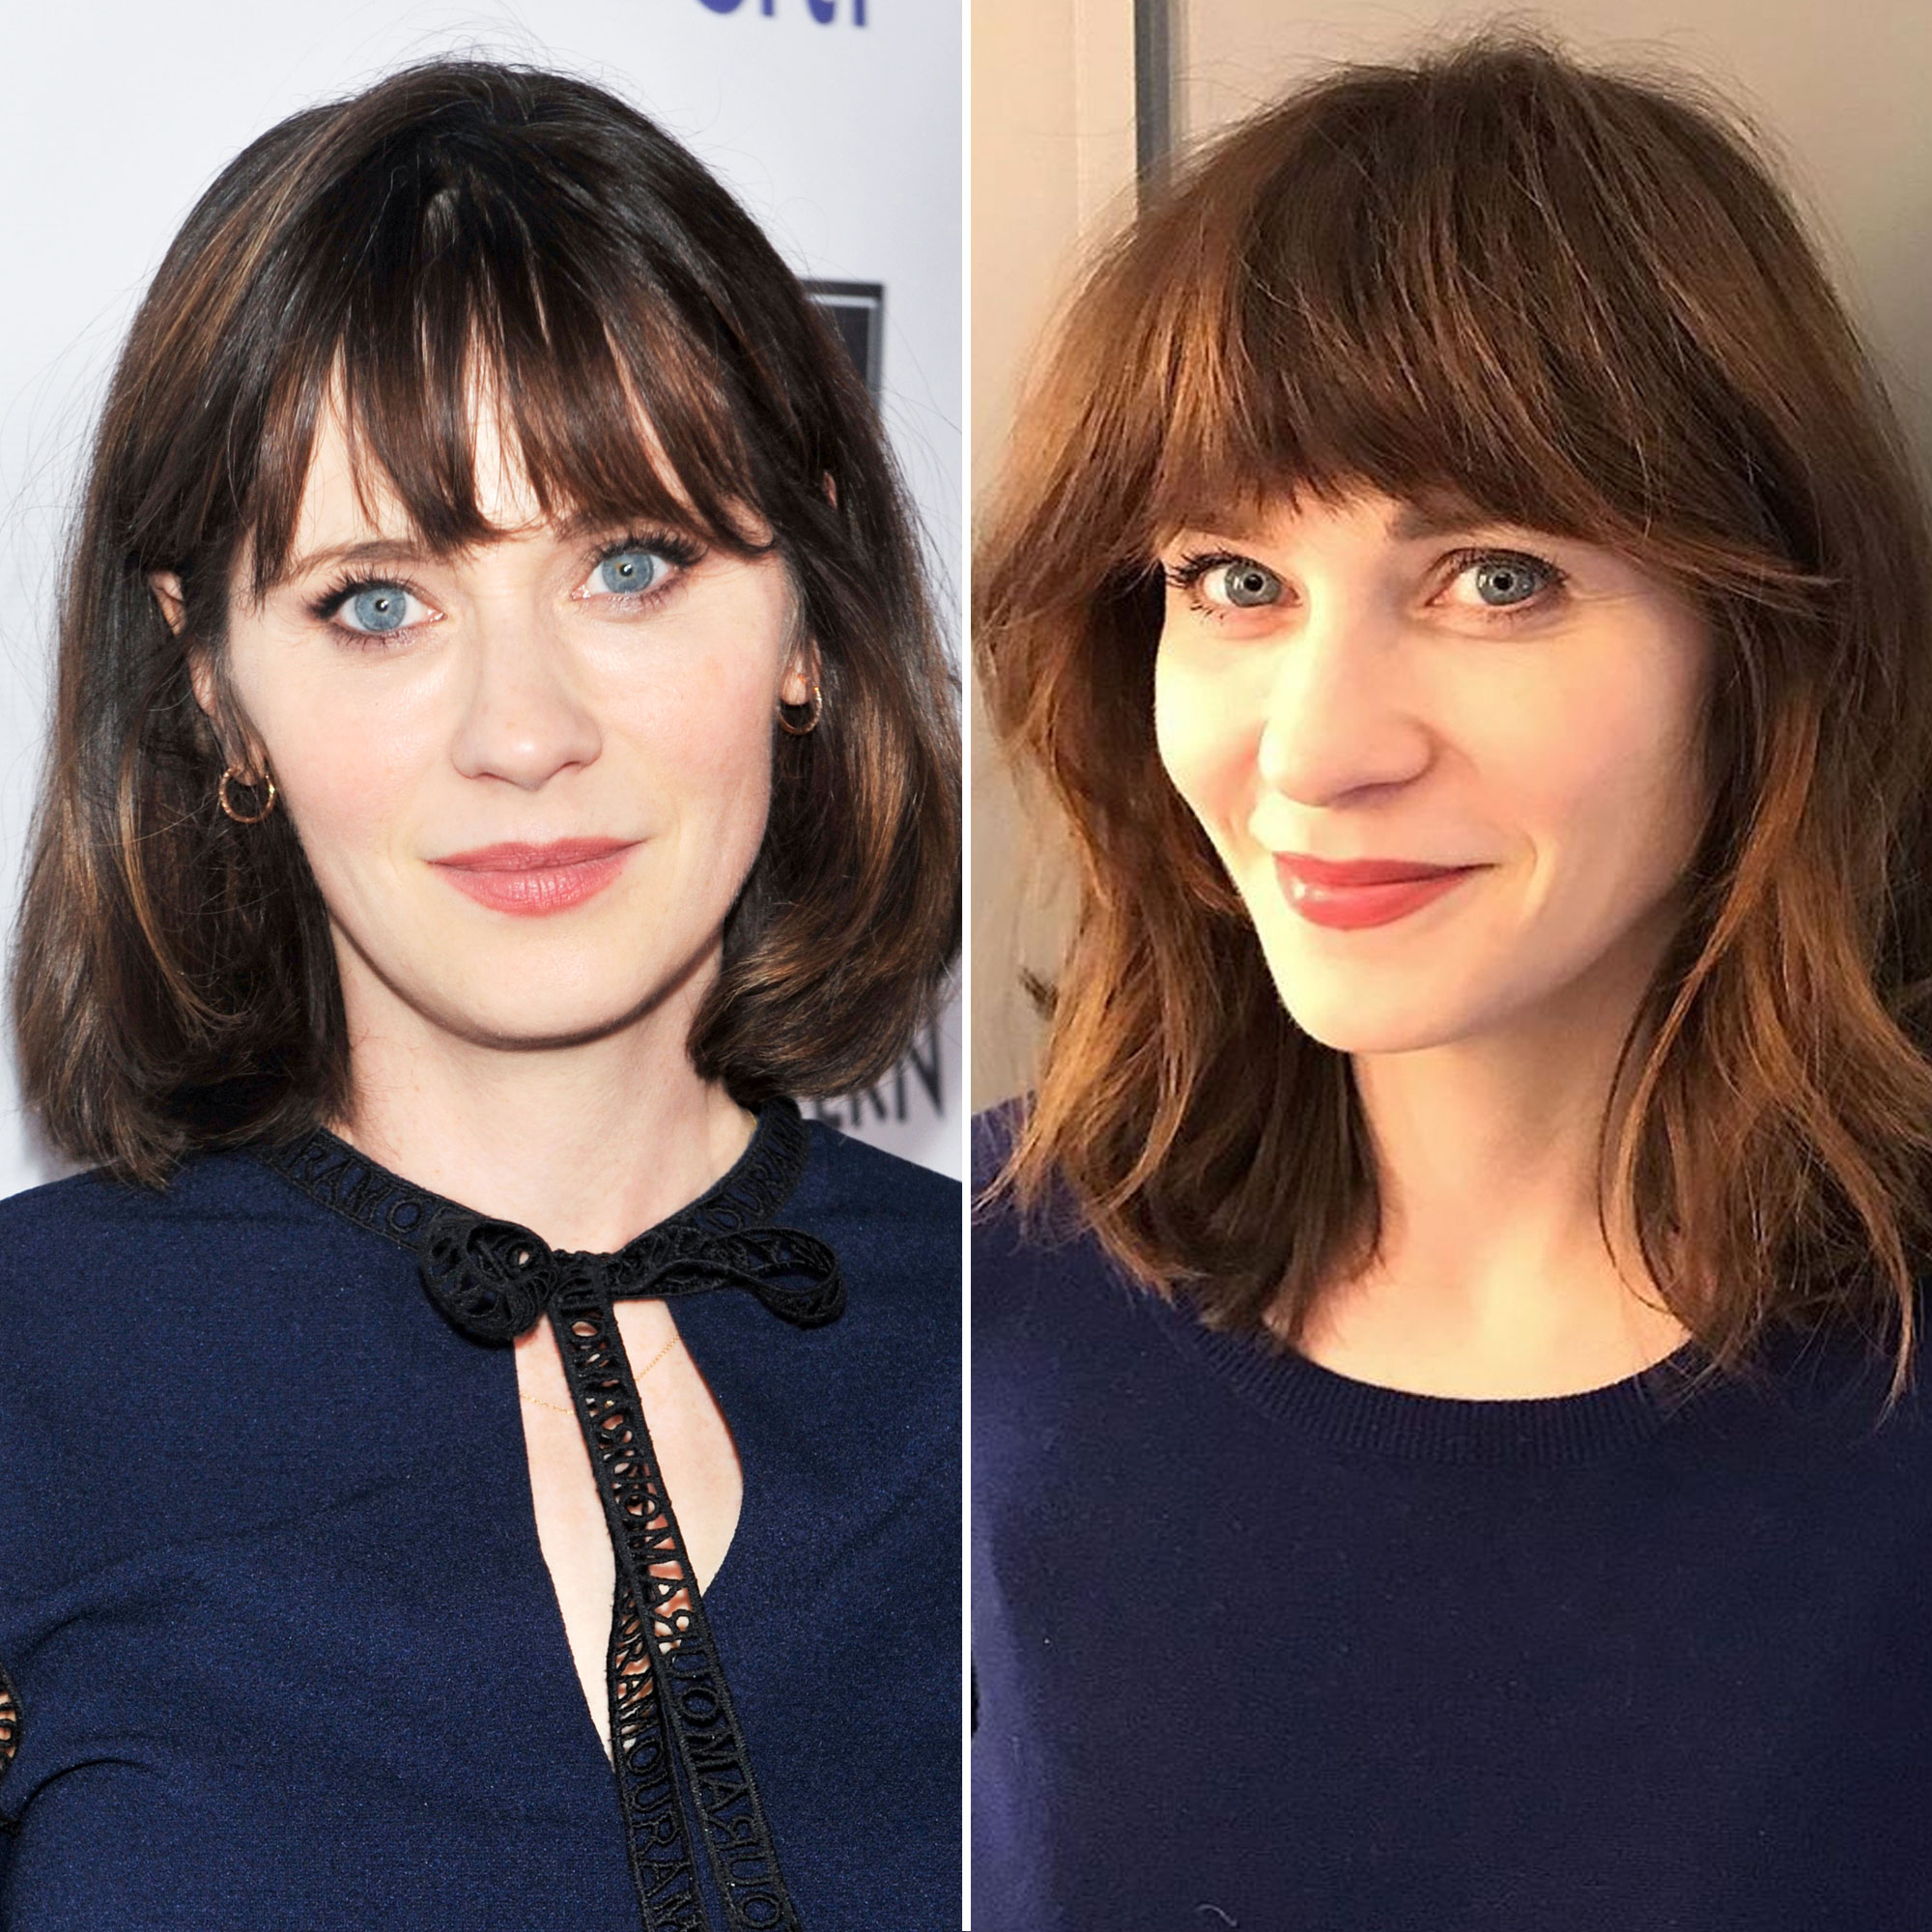 Zooey Deschanel's New Haircut Is One of the Best of 2019 So Far - The New Girl star gave us some seriously cute spring hair inspo on February 19 thanks to her fresh shoulder-grazing chop and brow-length bangs courtesy of hairstylist Jennifer Loura.